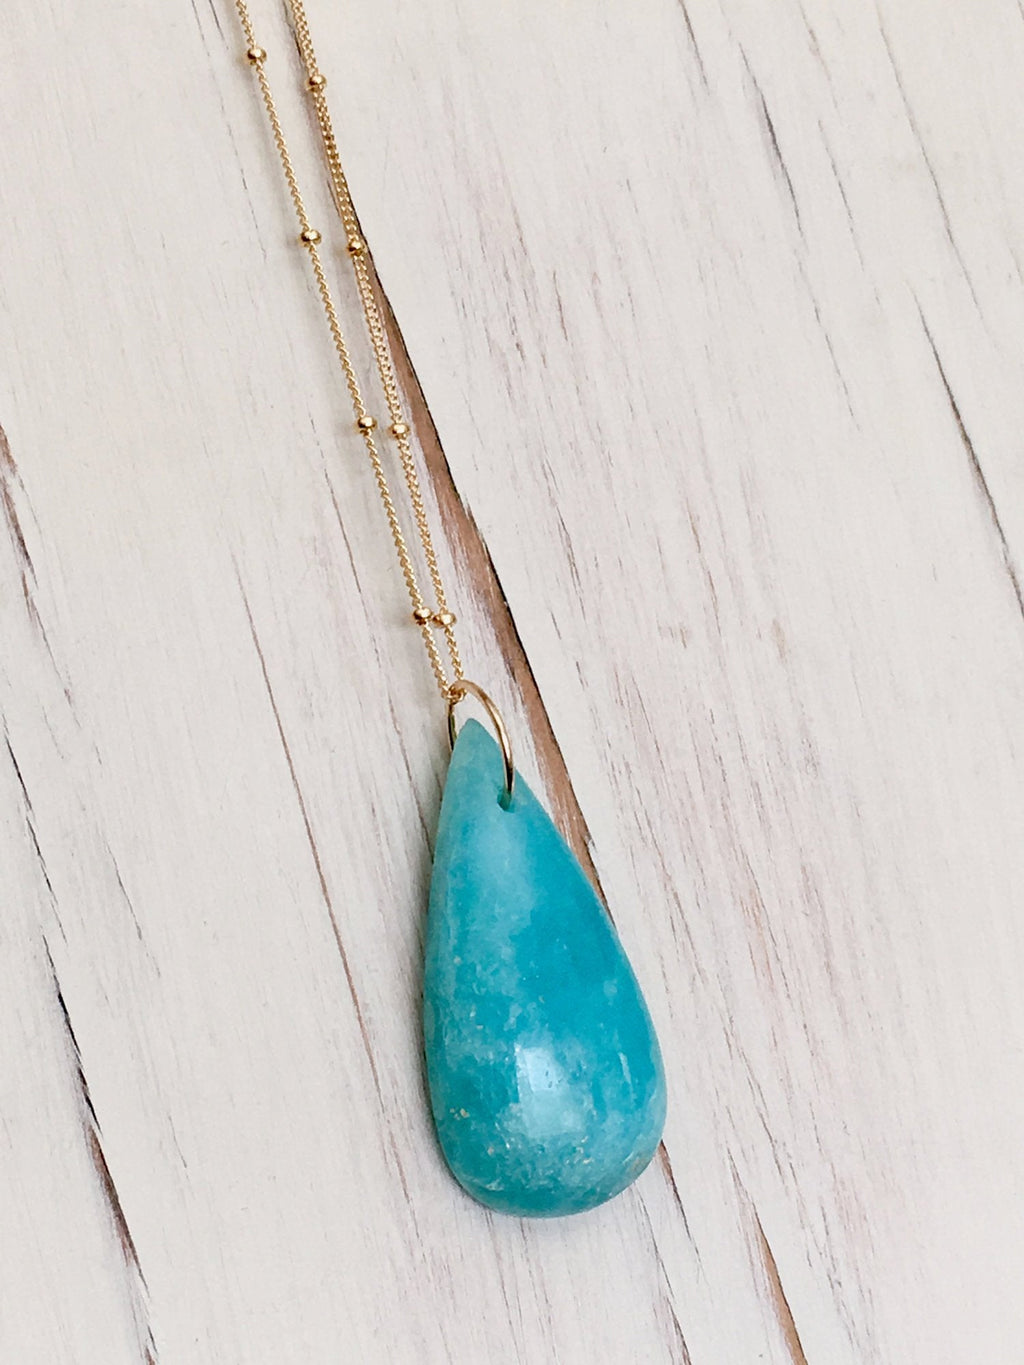 Hemimorphite Tear Pendant Necklace